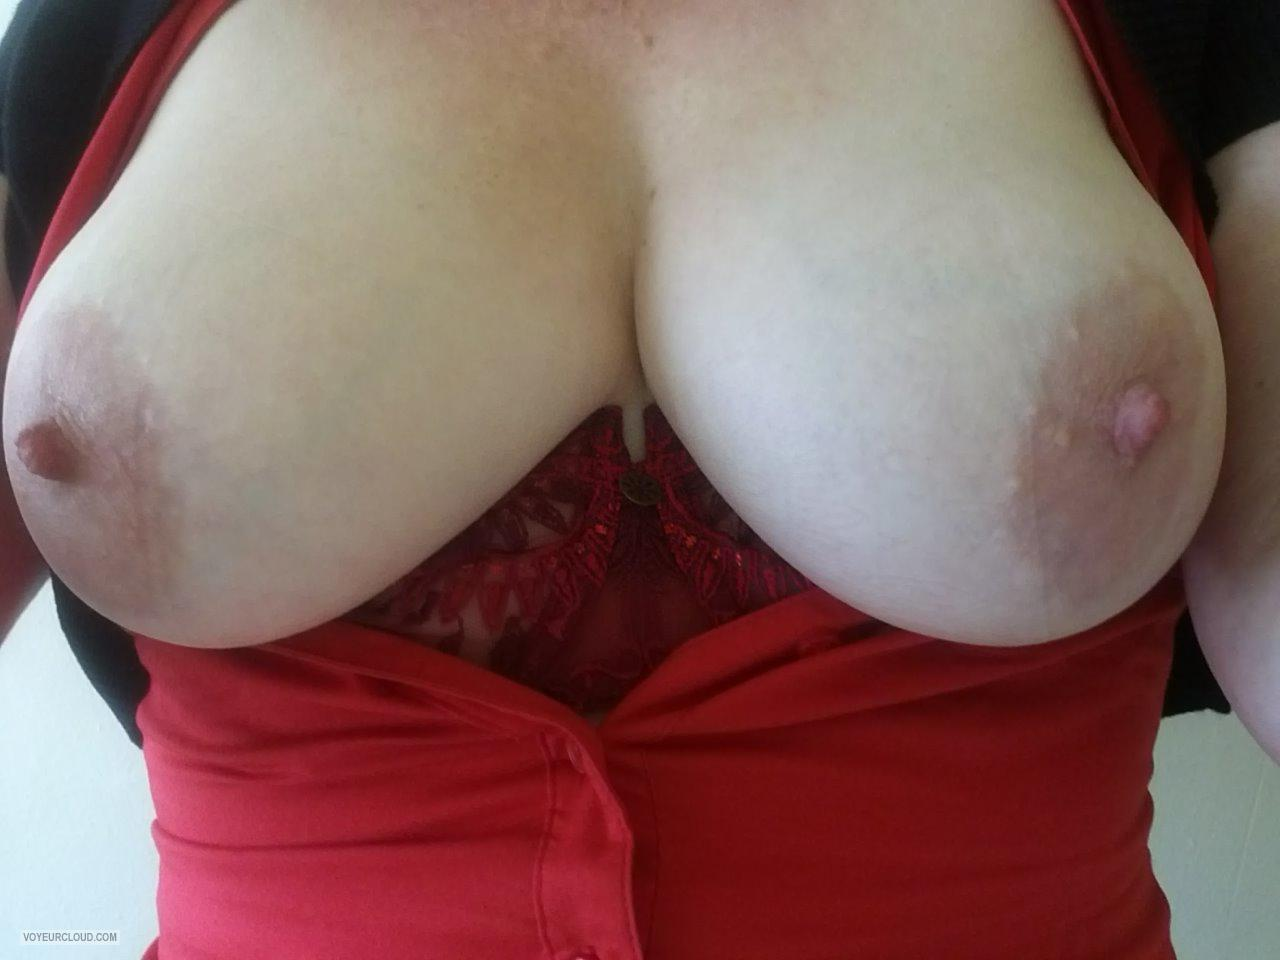 Tit Flash: Wife's Big Tits (Selfie) - Jojo from United Kingdom